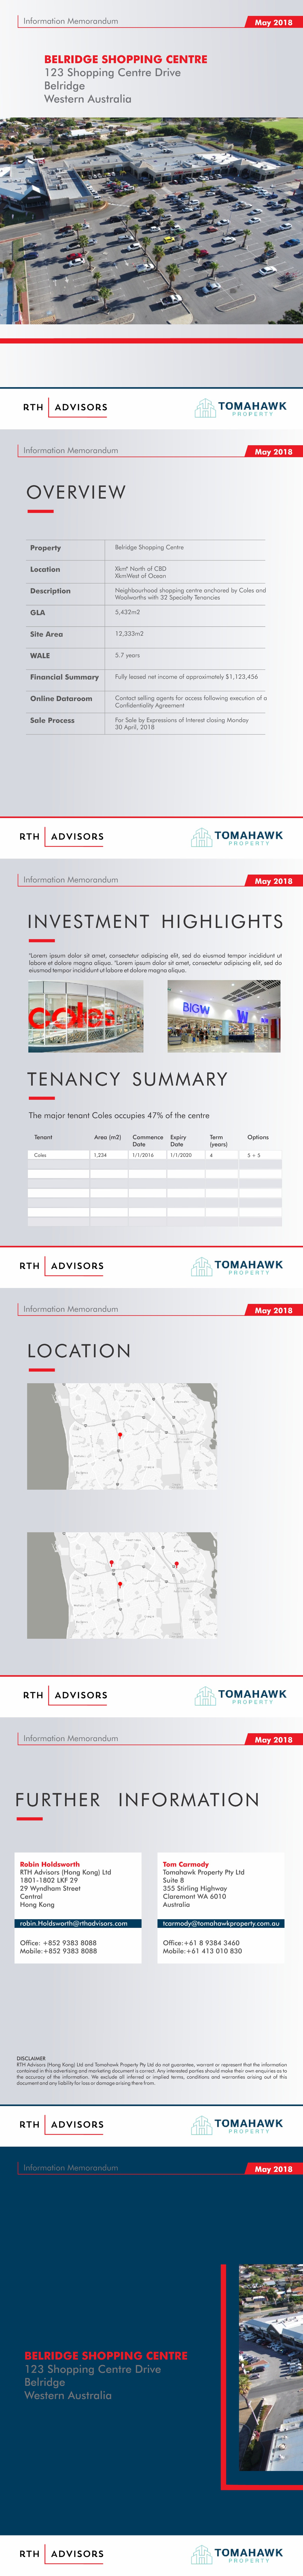 For Sale - Shopping Centre Template Design